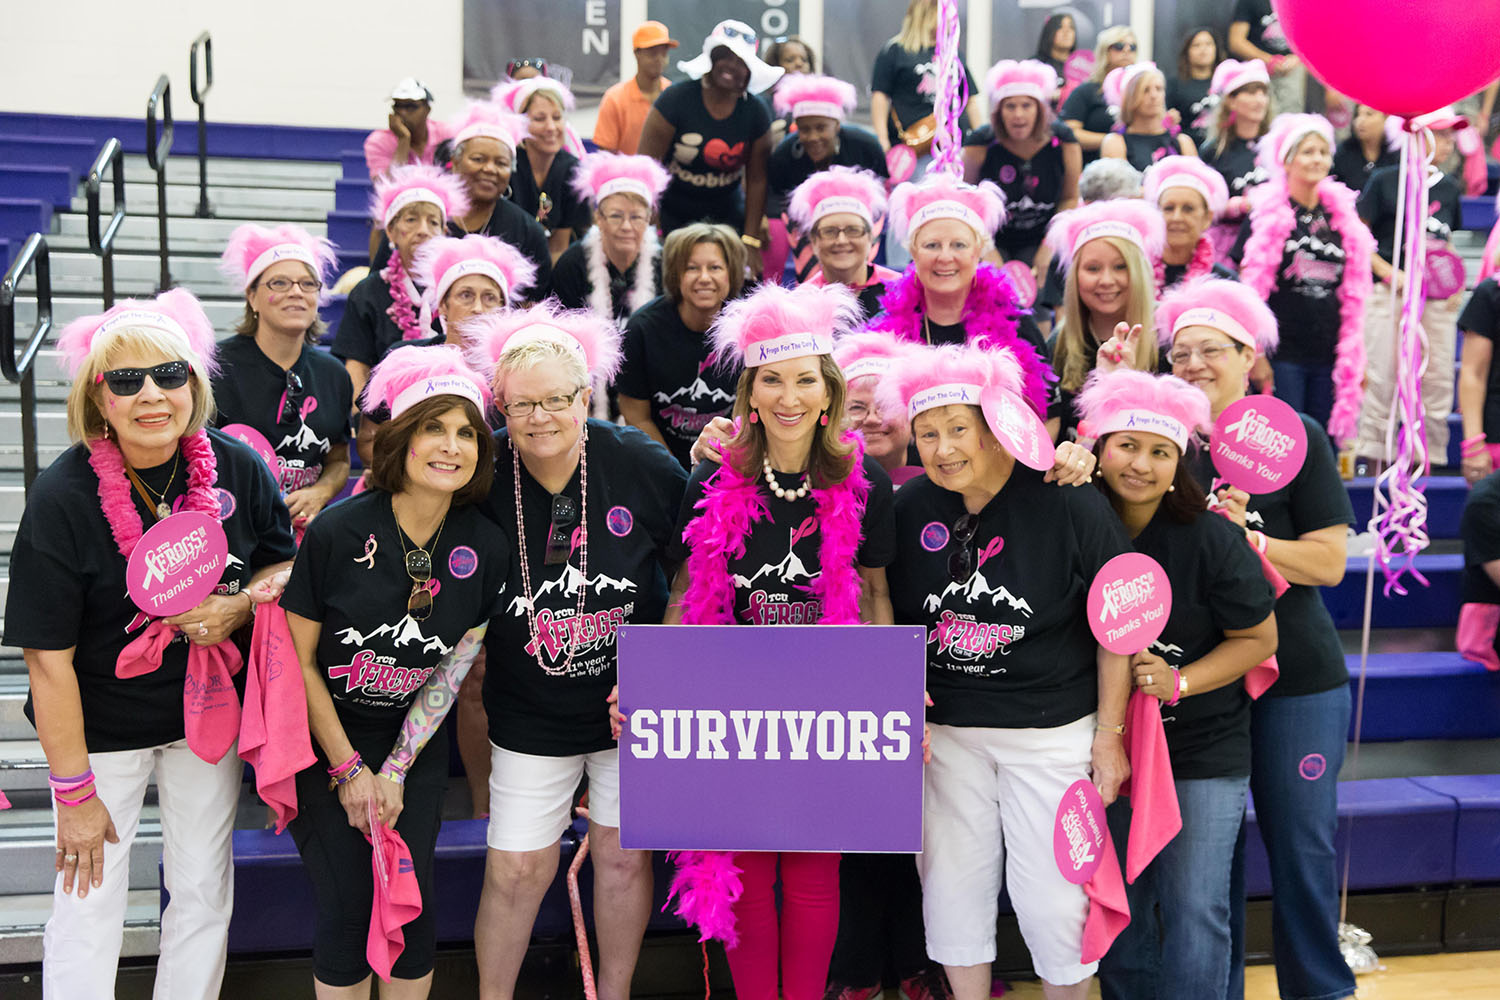 Ann Louden, leader and chair of TCU's Frogs for the Cure, surrounded by fellow breast cancer survivors at campus music video shoot.